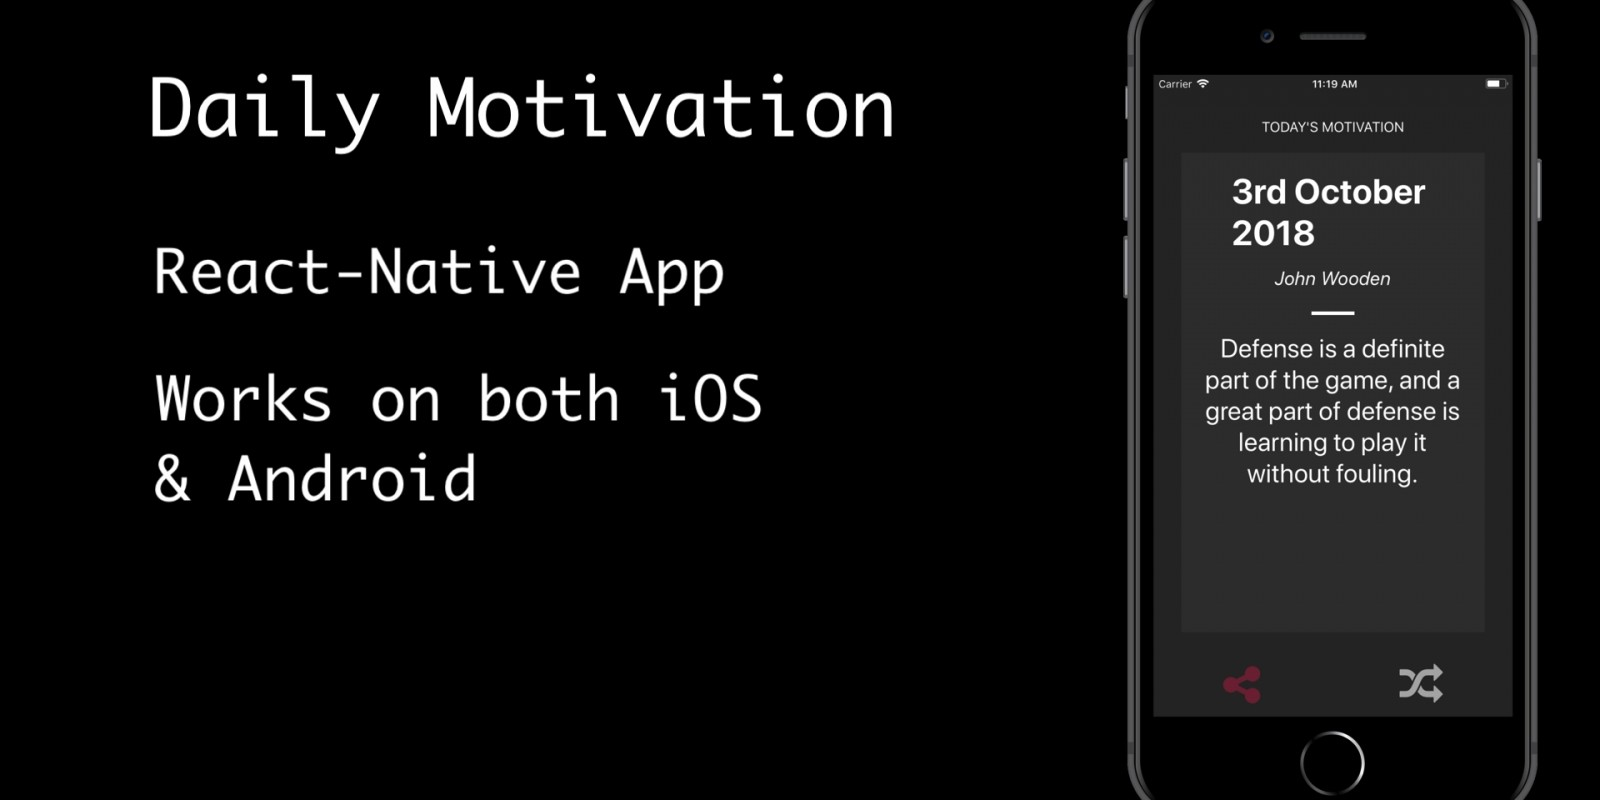 Daily Motivation - React Native App Template